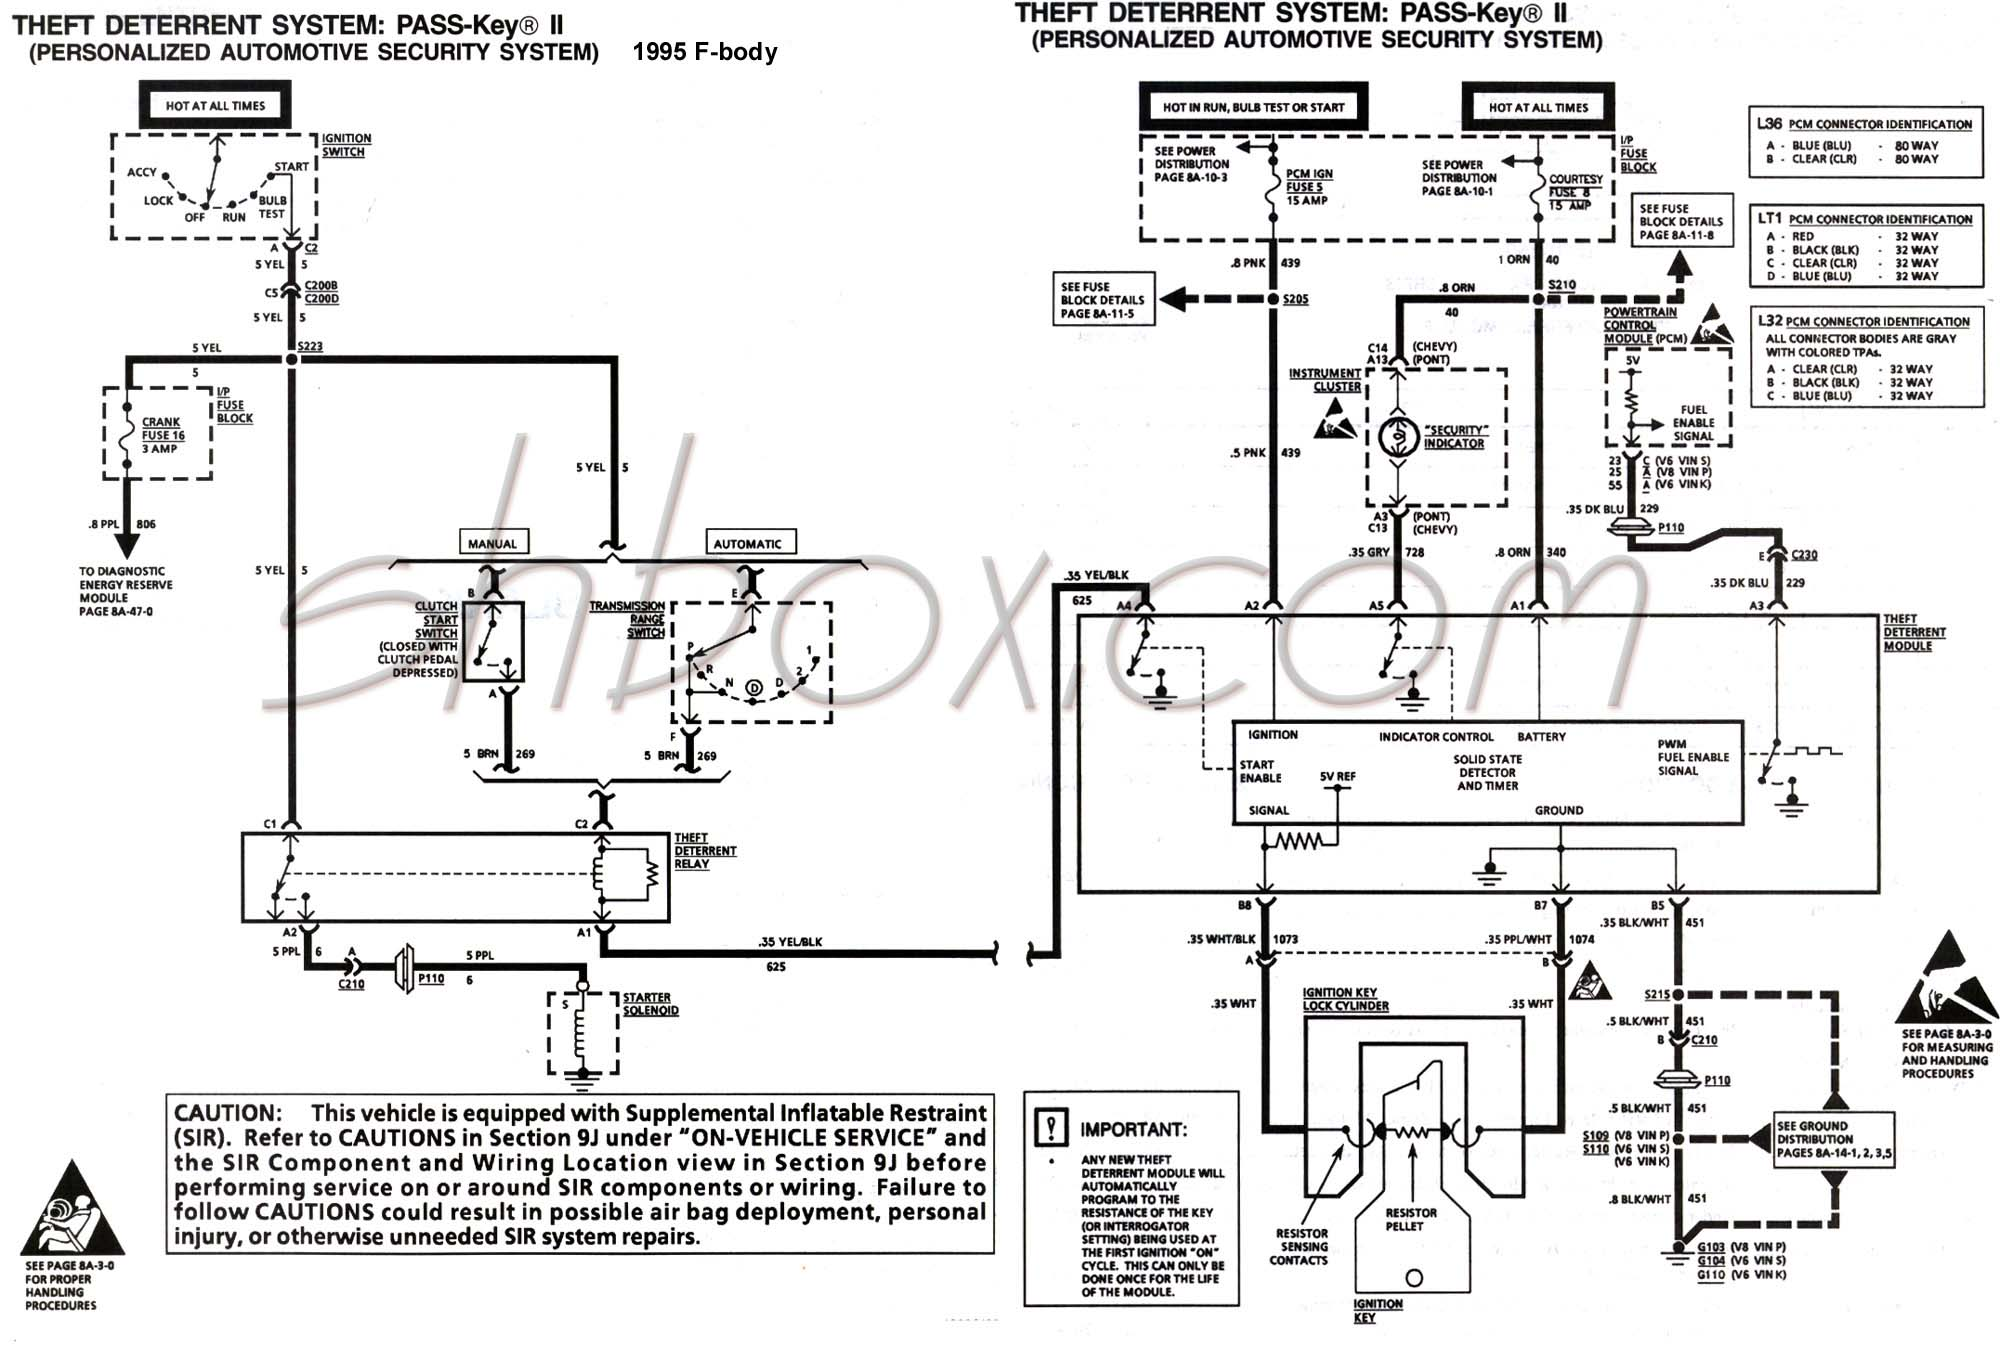 hight resolution of 4th gen lt1 f body tech aids a diagram for chevy silverado ignition wires 94 camaro ignition wire diagram